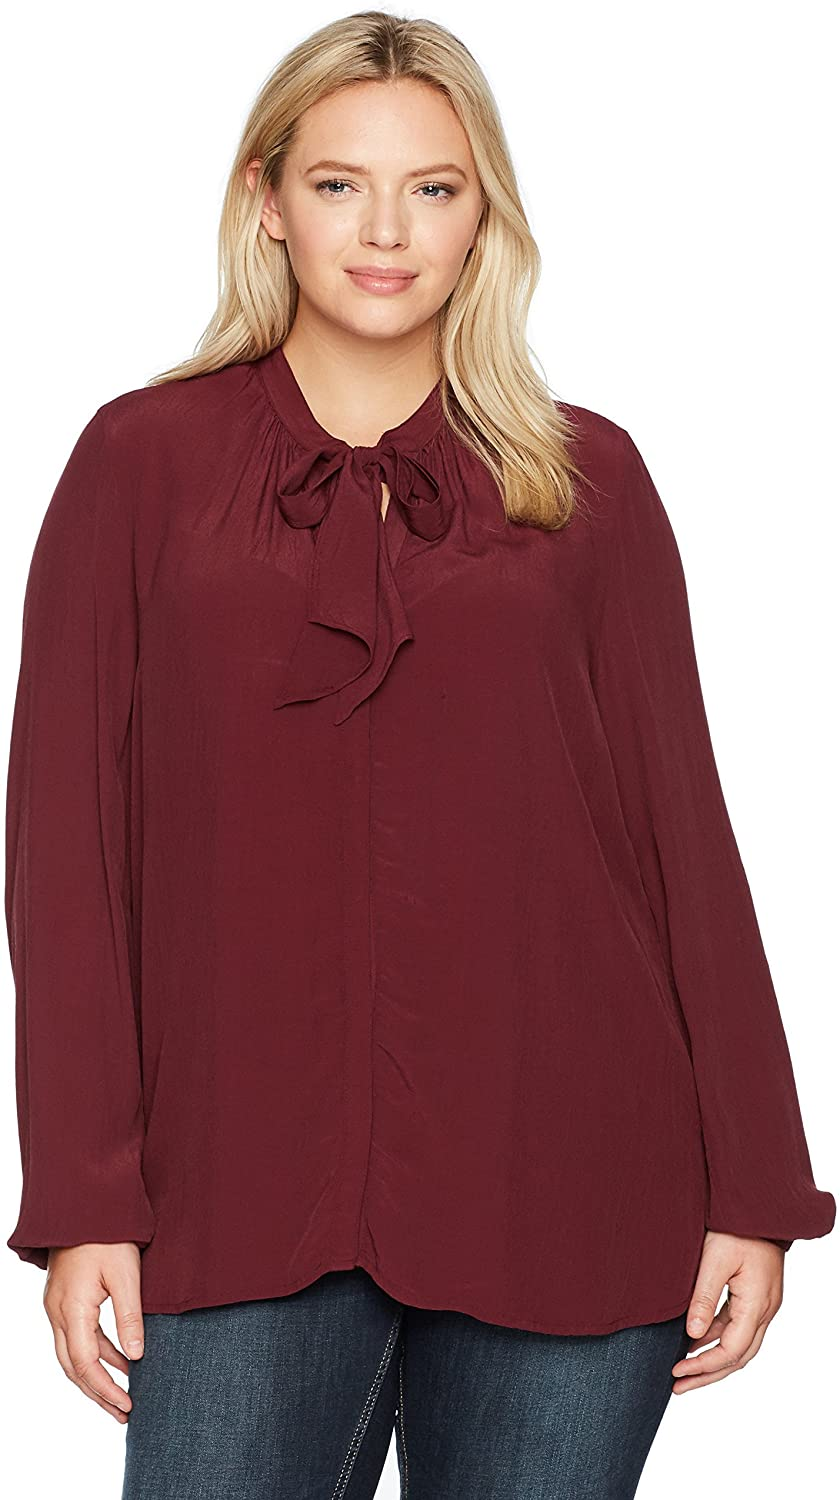 Lucky Brand Women's Plus Size Tie Front Top